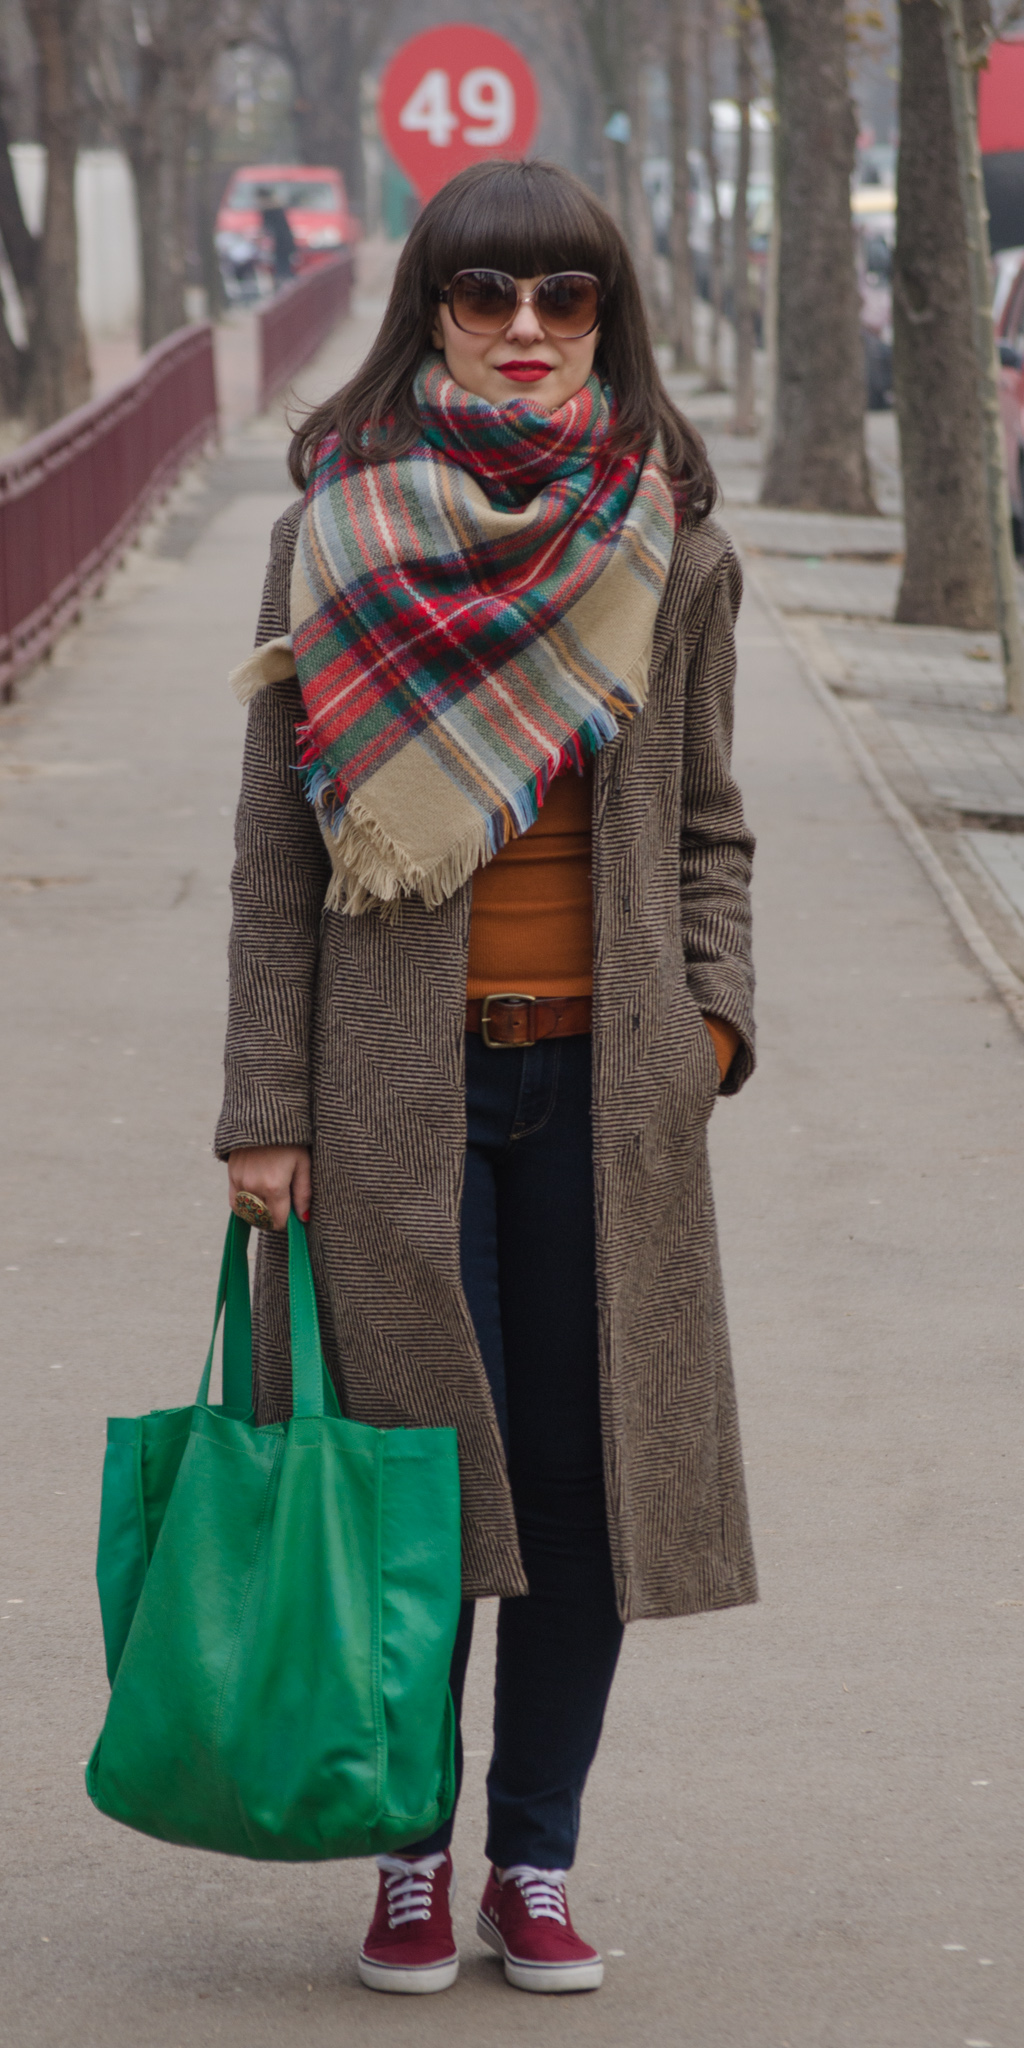 clasic brown fall coat thrifted burgundy h&m sneakers burnt orange turtleneck over-sized scarf colorful green red christmas bag zara indigo jeans skinny bangs hair